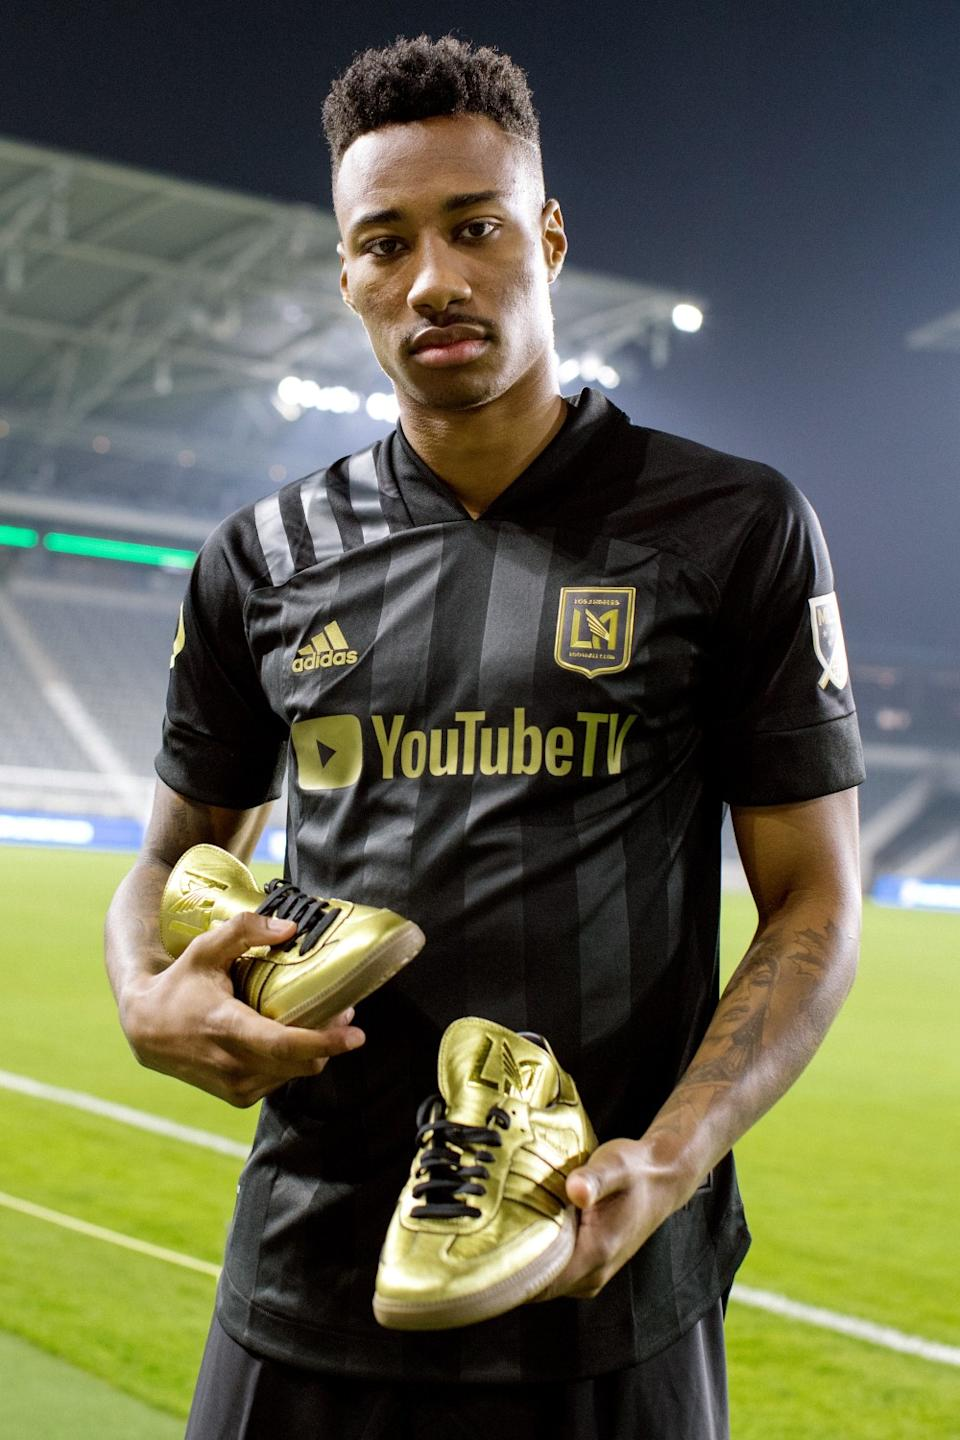 Mark-Anthony Kaye holds a pair of gold-colored Adidas sneakers.